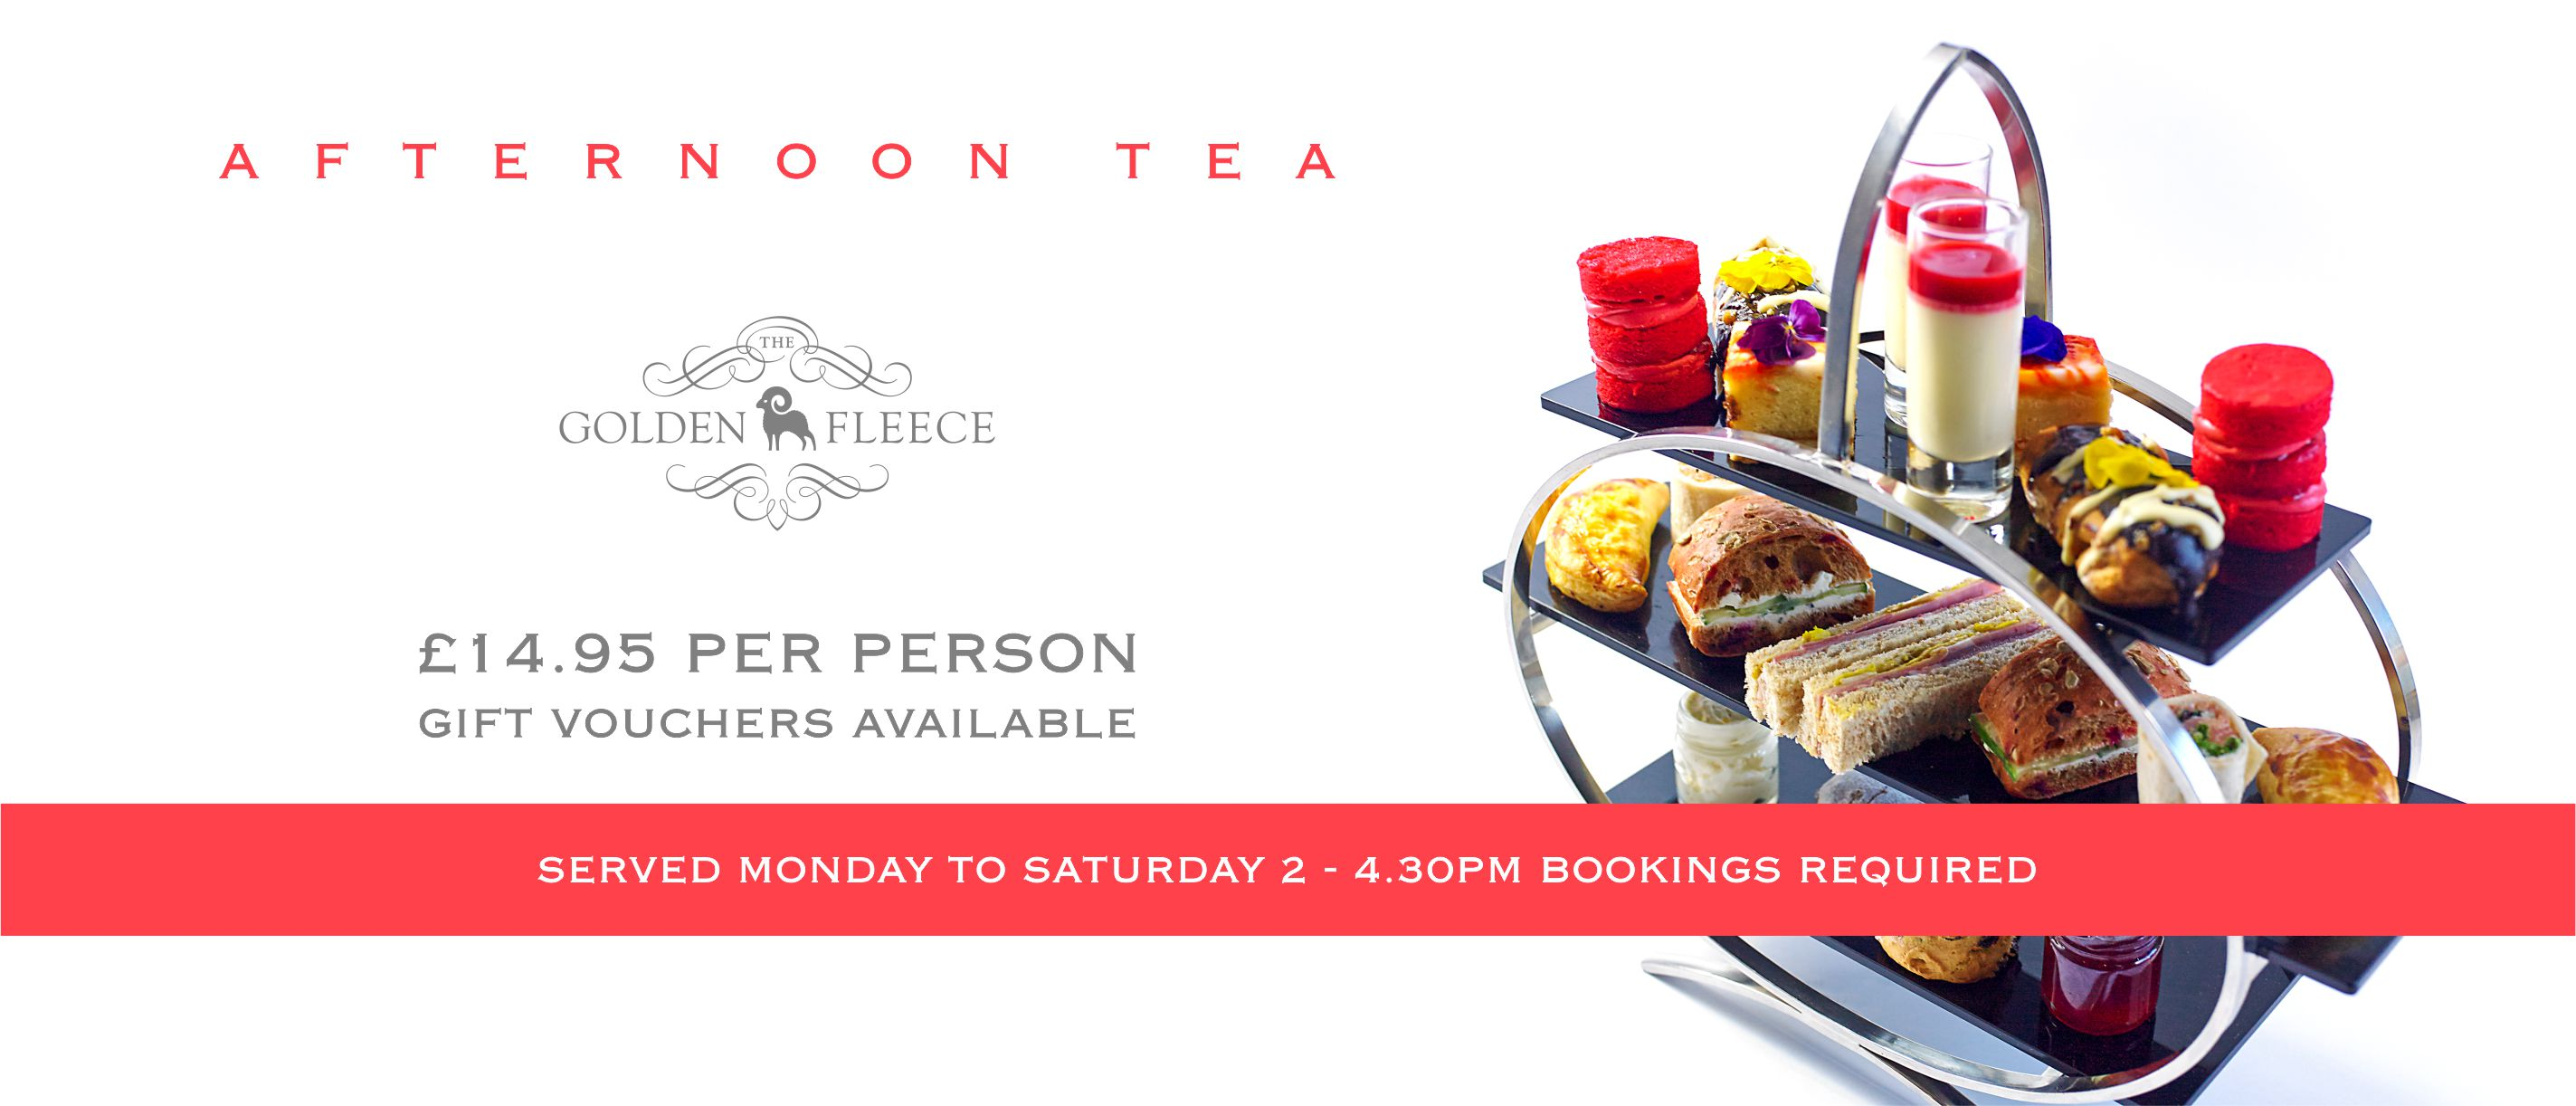 afternoon-tea-front-page-banner Oct2018